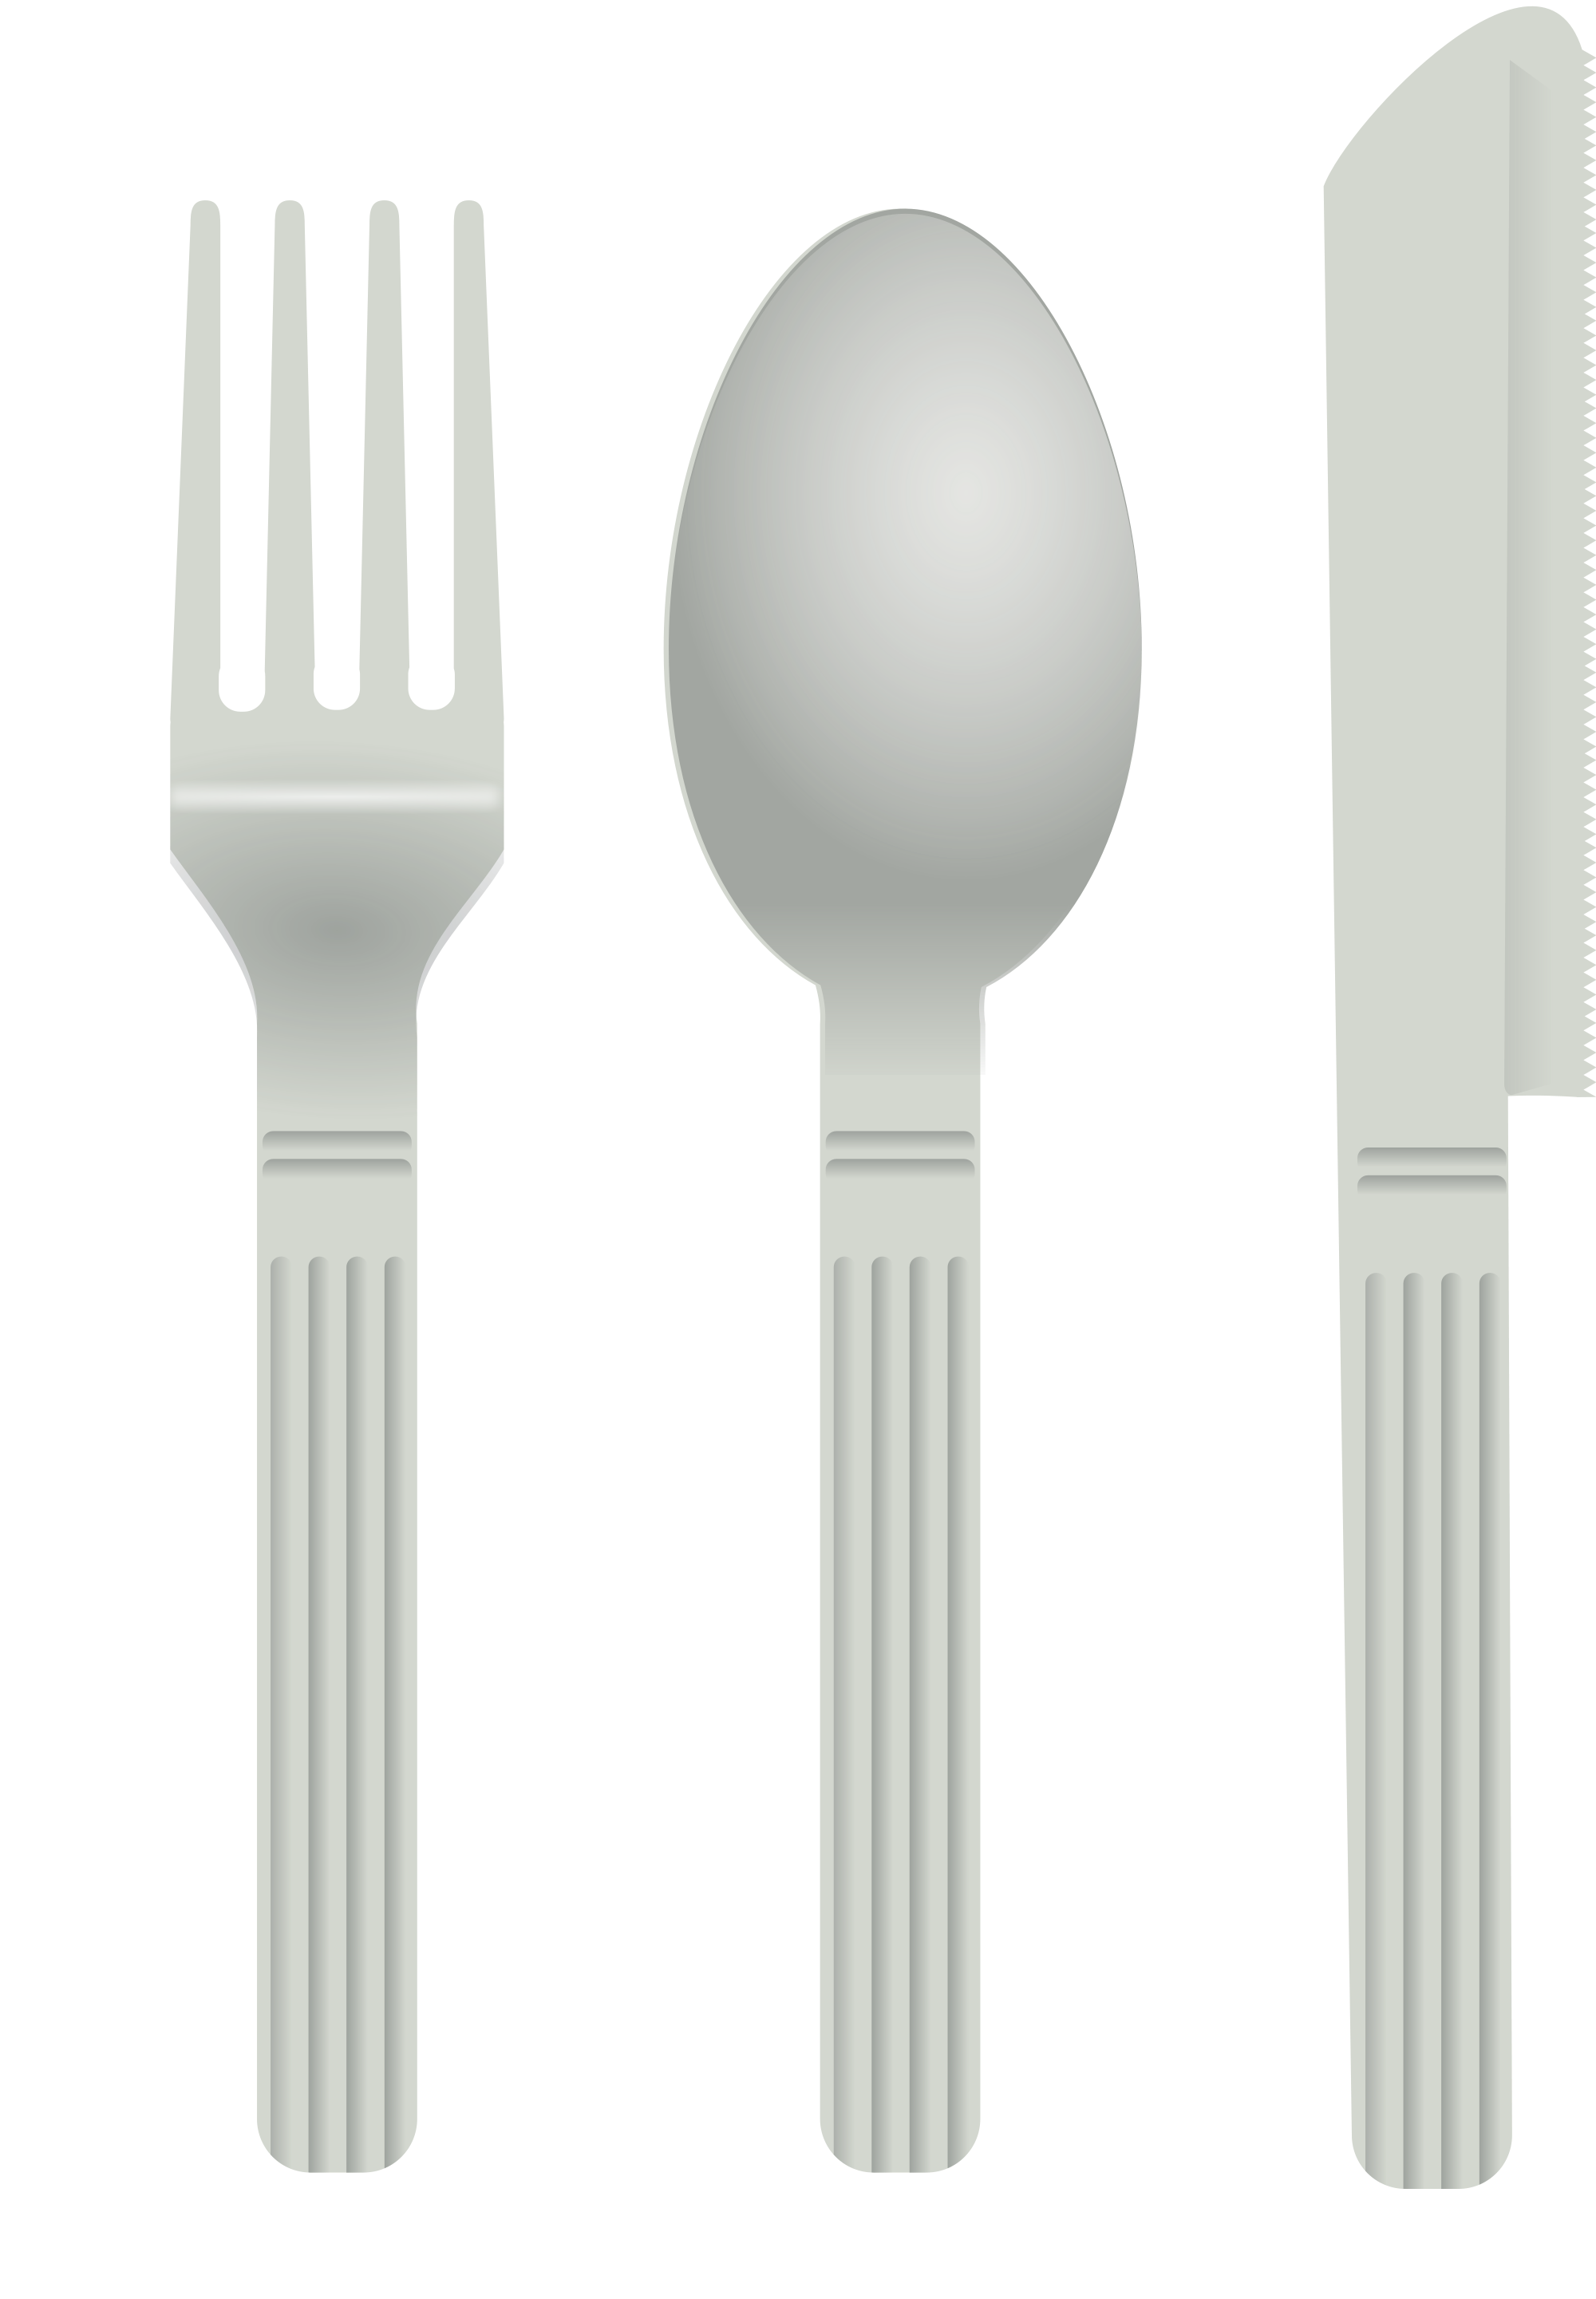 Knife svg fork spoon. File and wikimedia commons